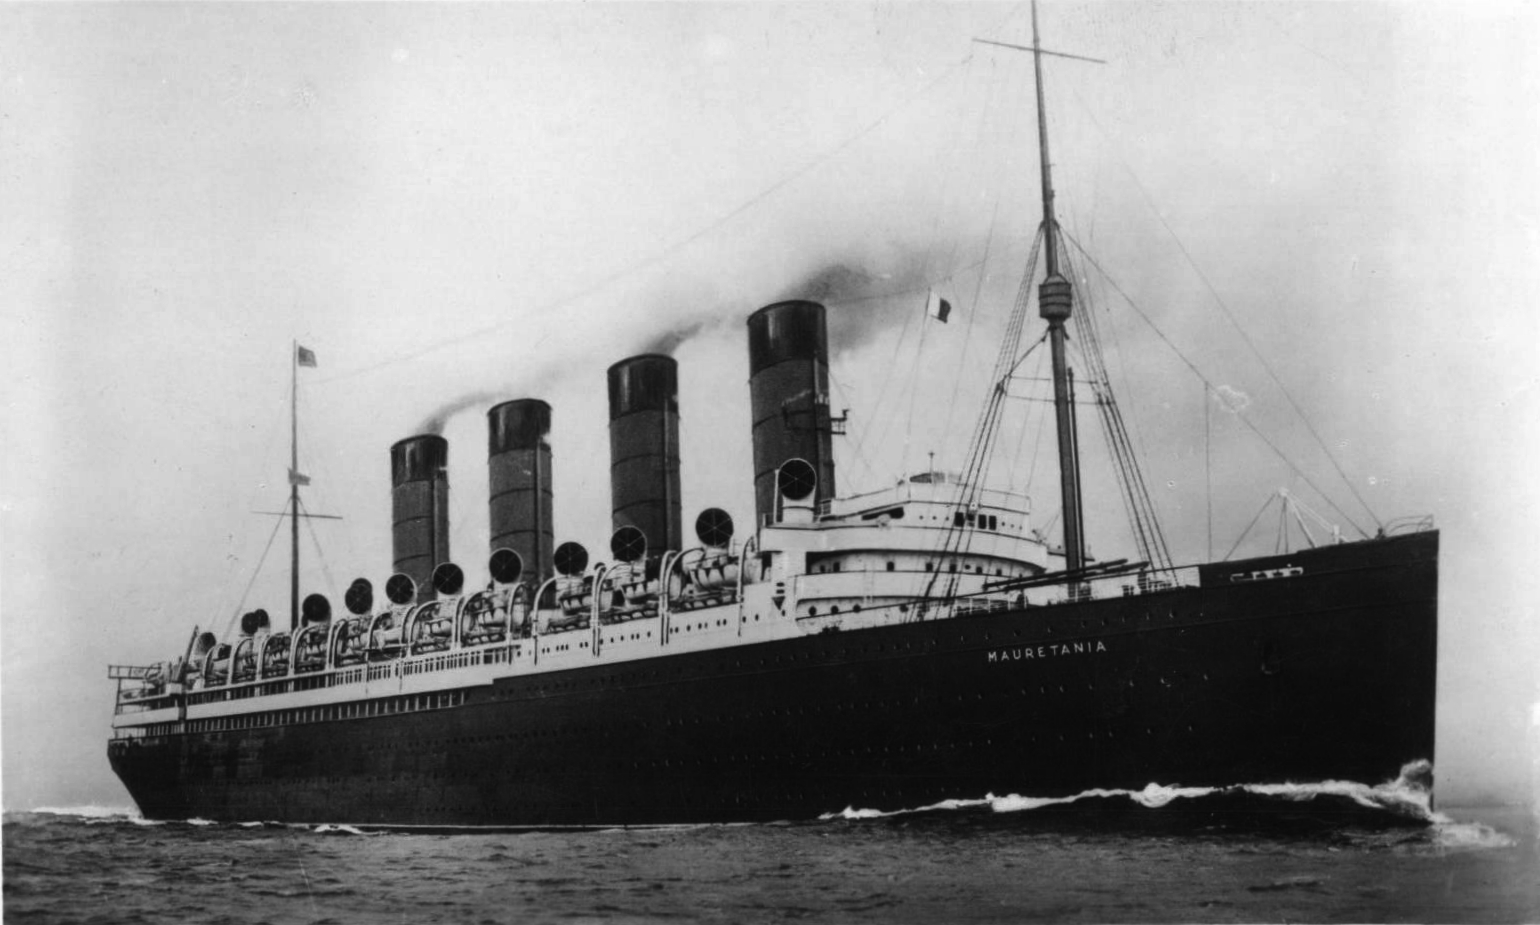 Starting Rms Mauretania From Cold